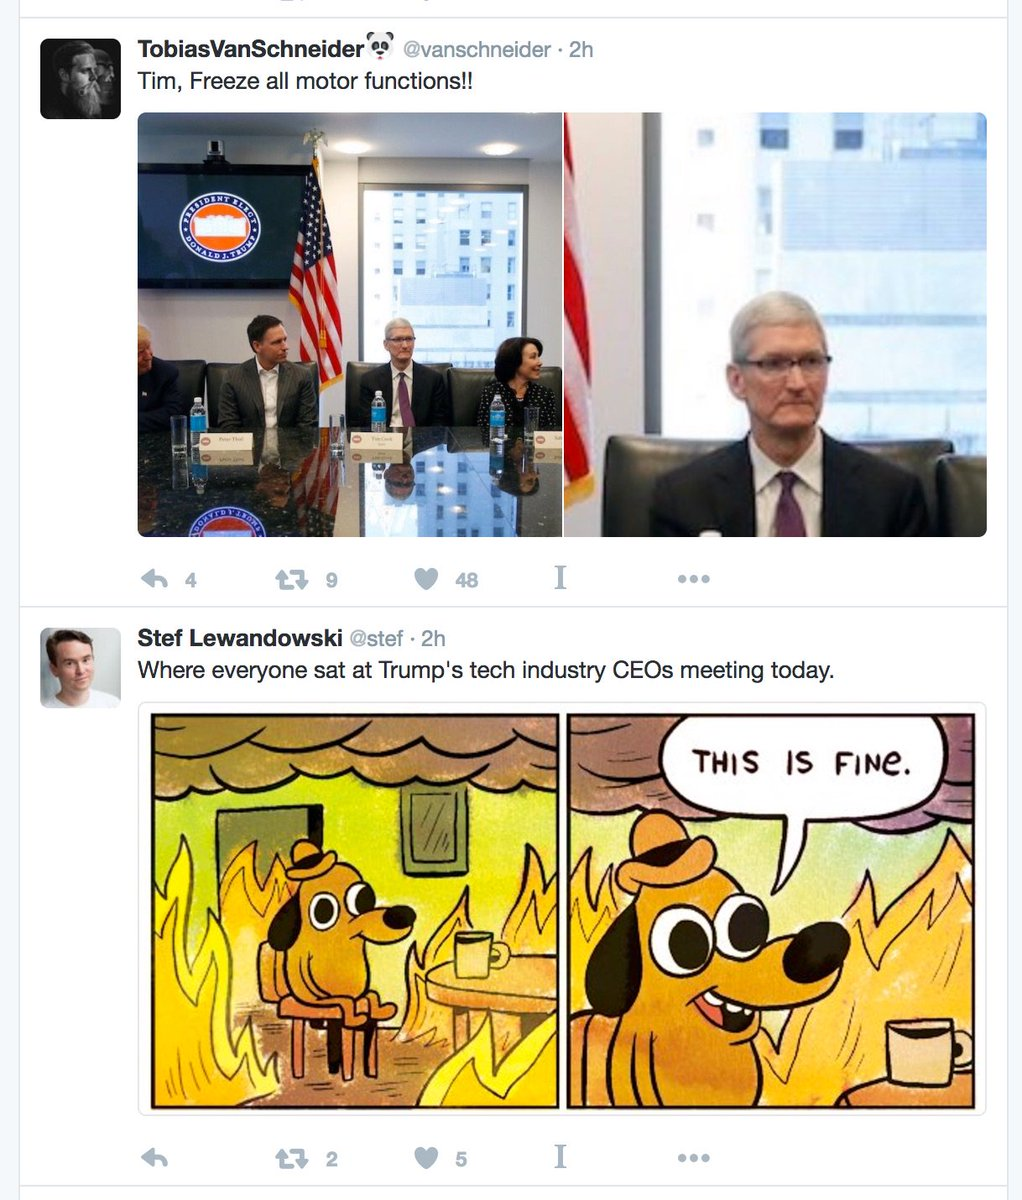 unintentional synergy from @stef @vanschneider https://t.co/jW2fVxgKCI